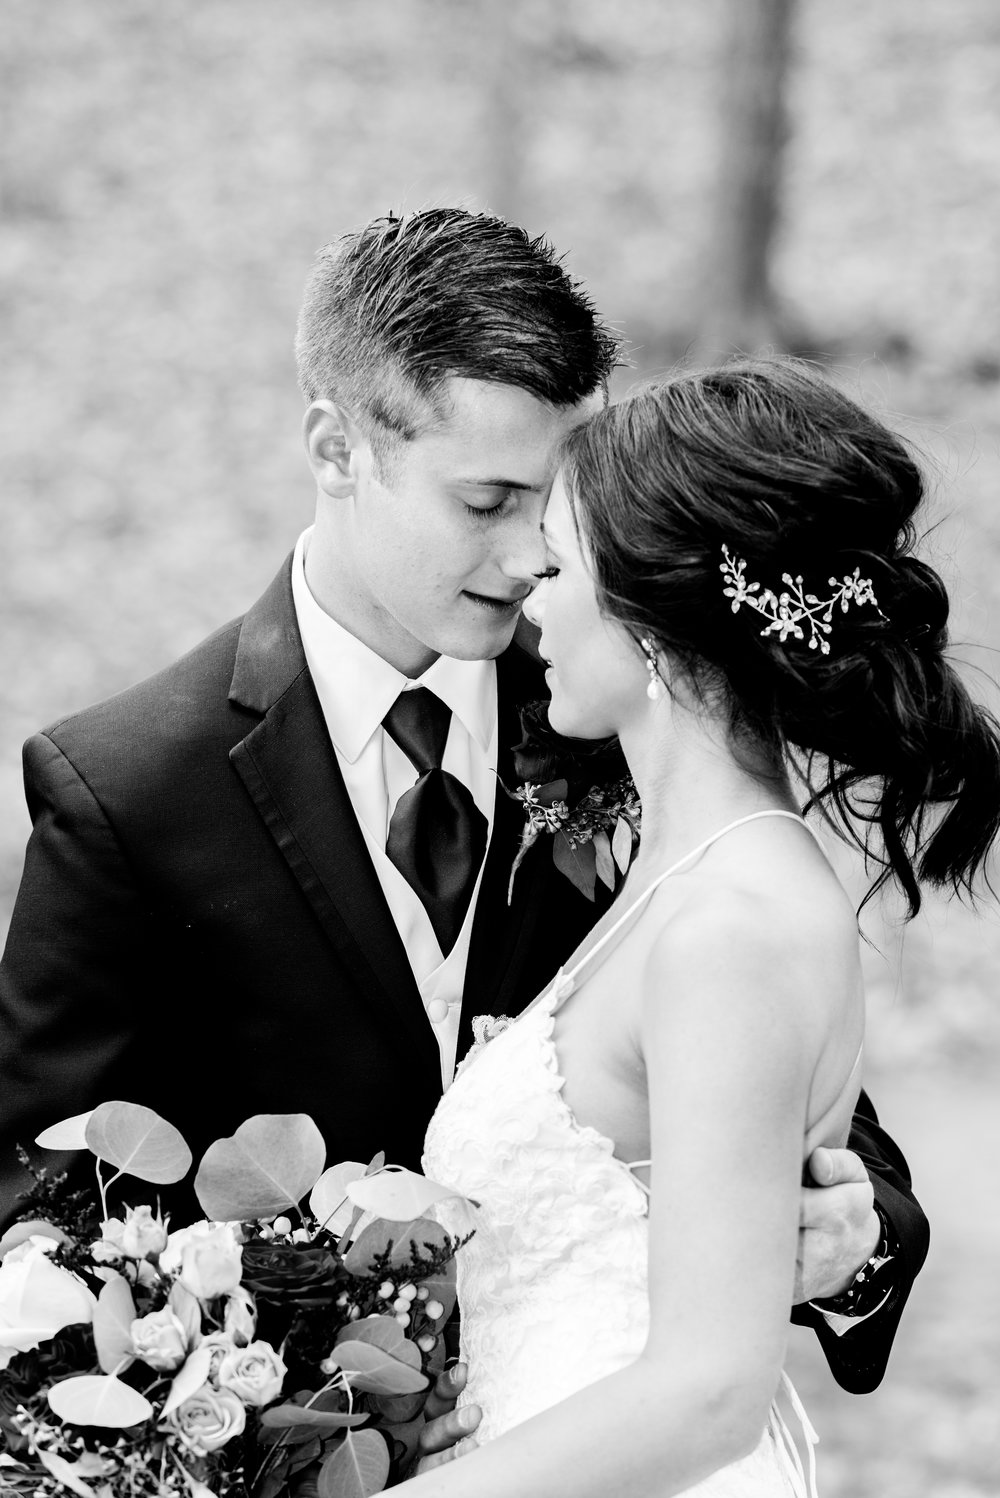 frazierweddinghappyoutphotography-9661.jpg